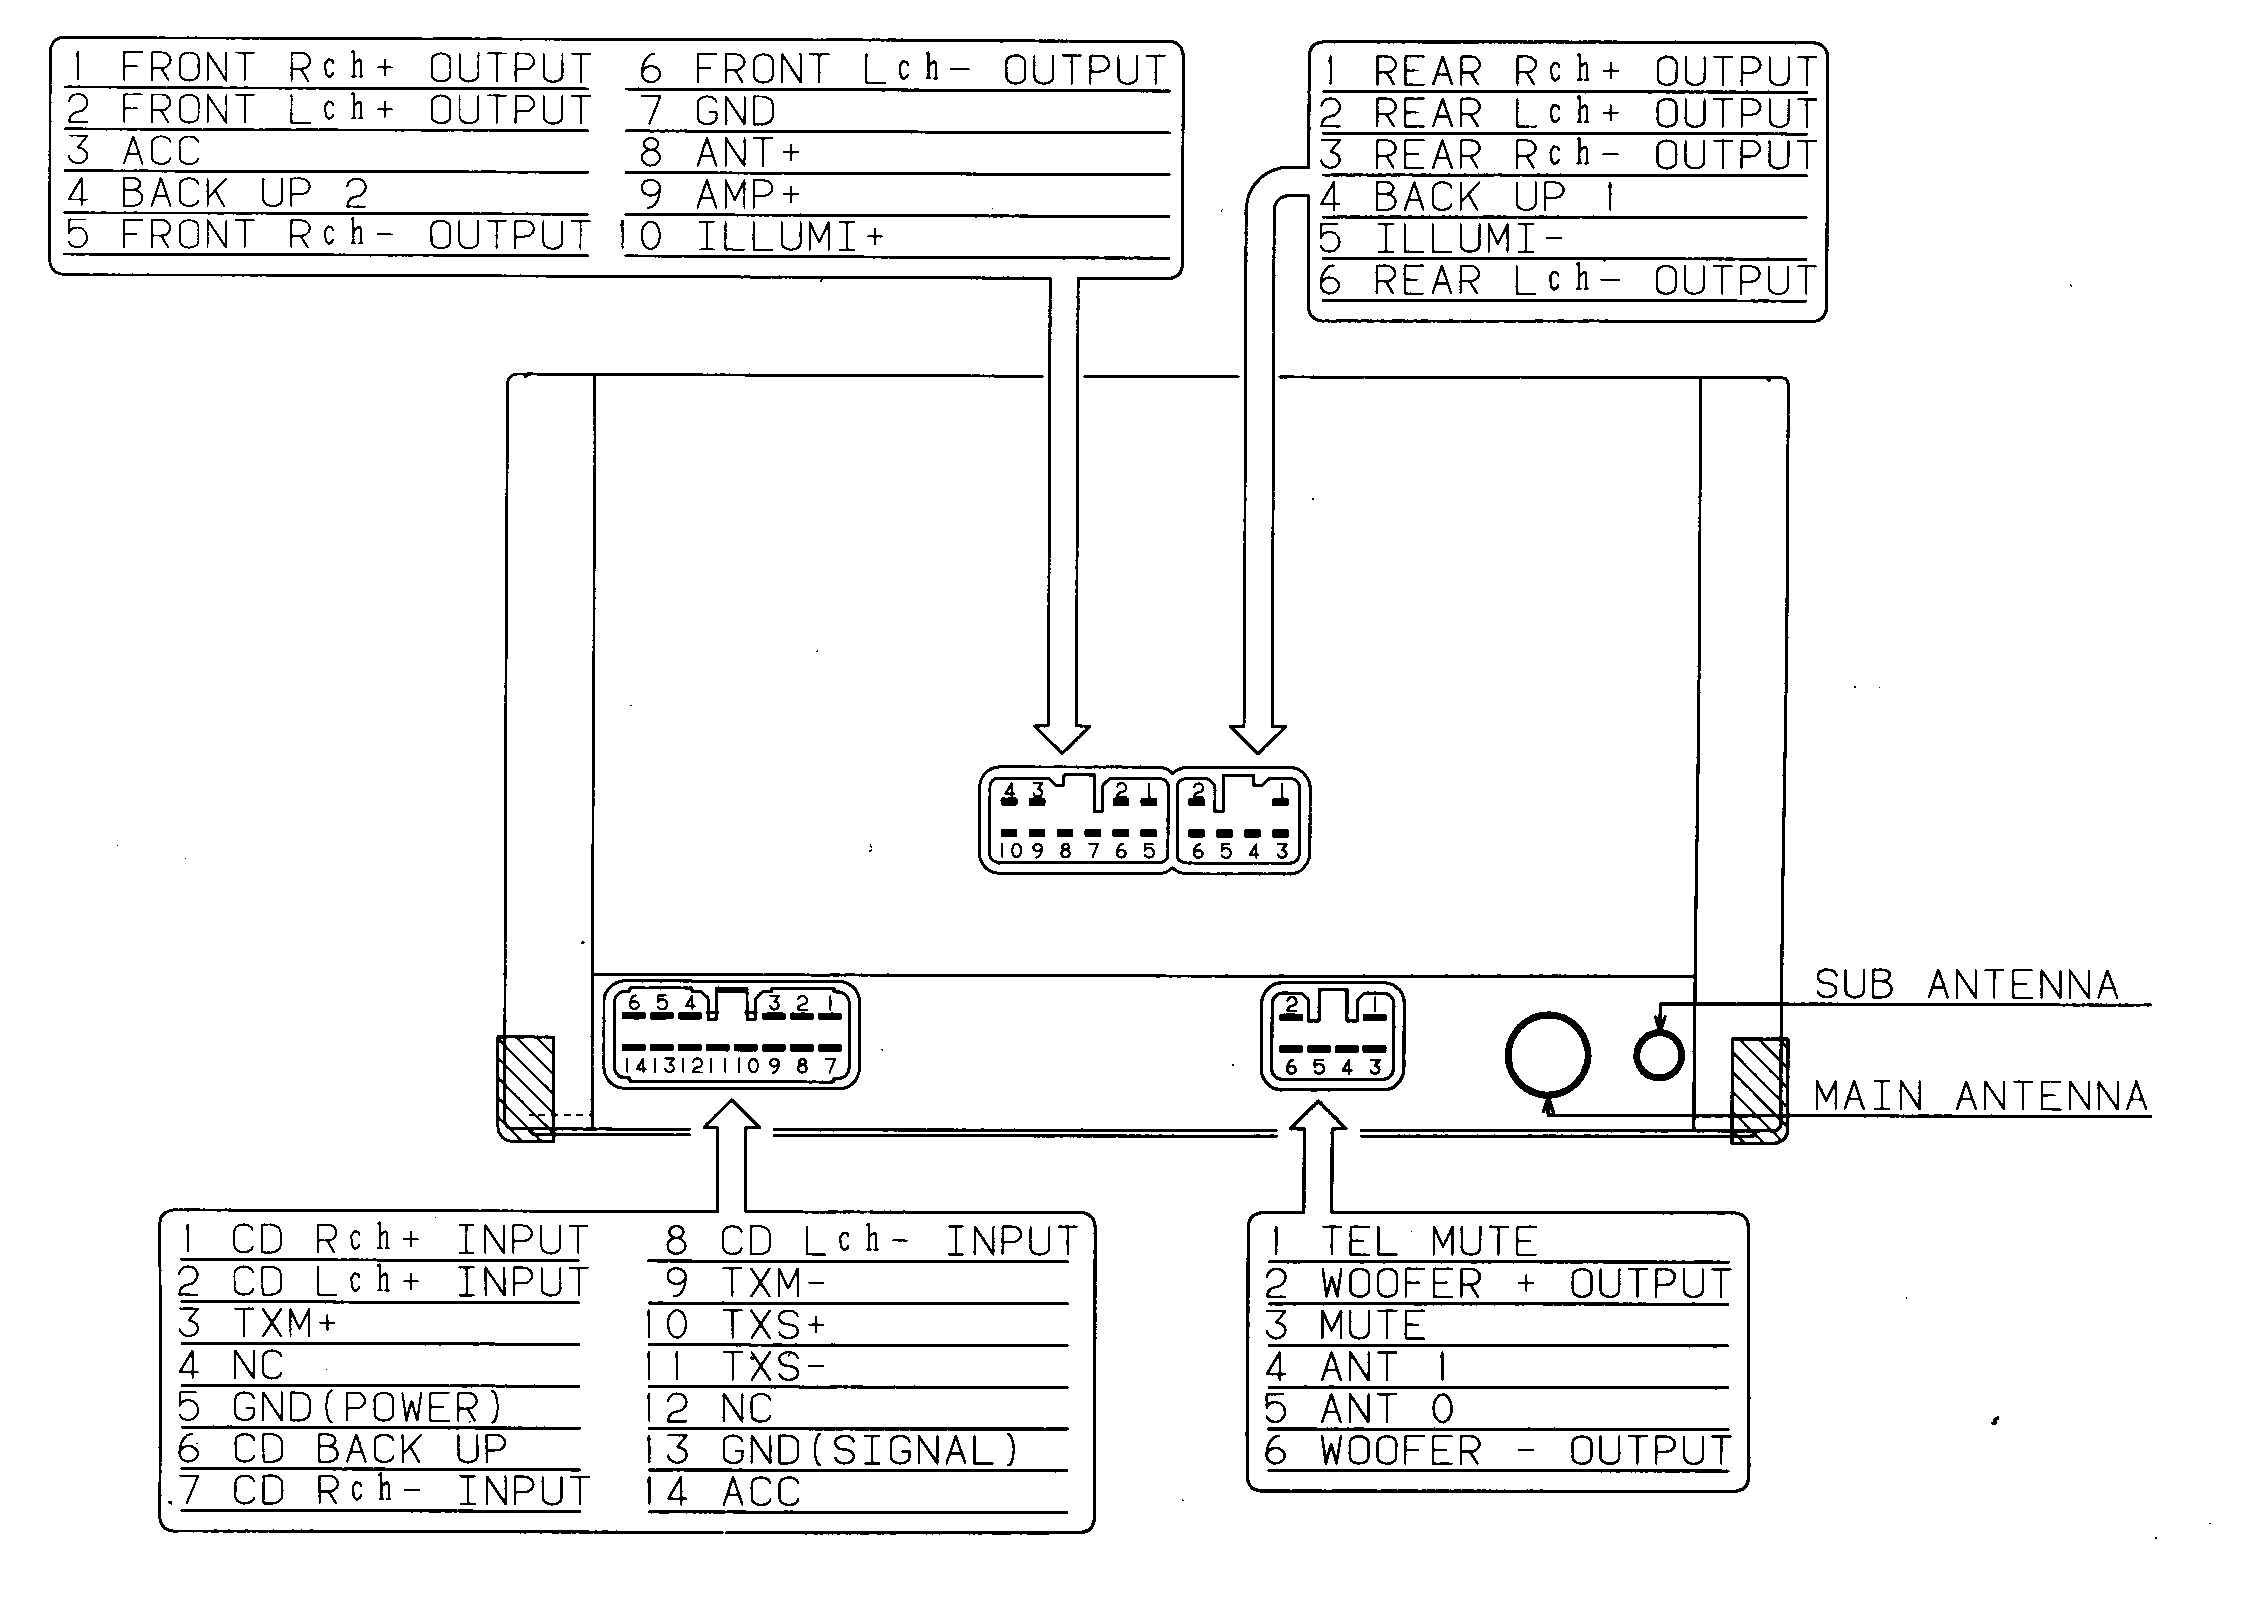 Lexus car stereo wiring diagram harness pinout connector wire lexus es300 radio wiring diagram 2002 lexus es300 radio wiring lexus sc430 radio wiring diagram at honlapkeszites.co